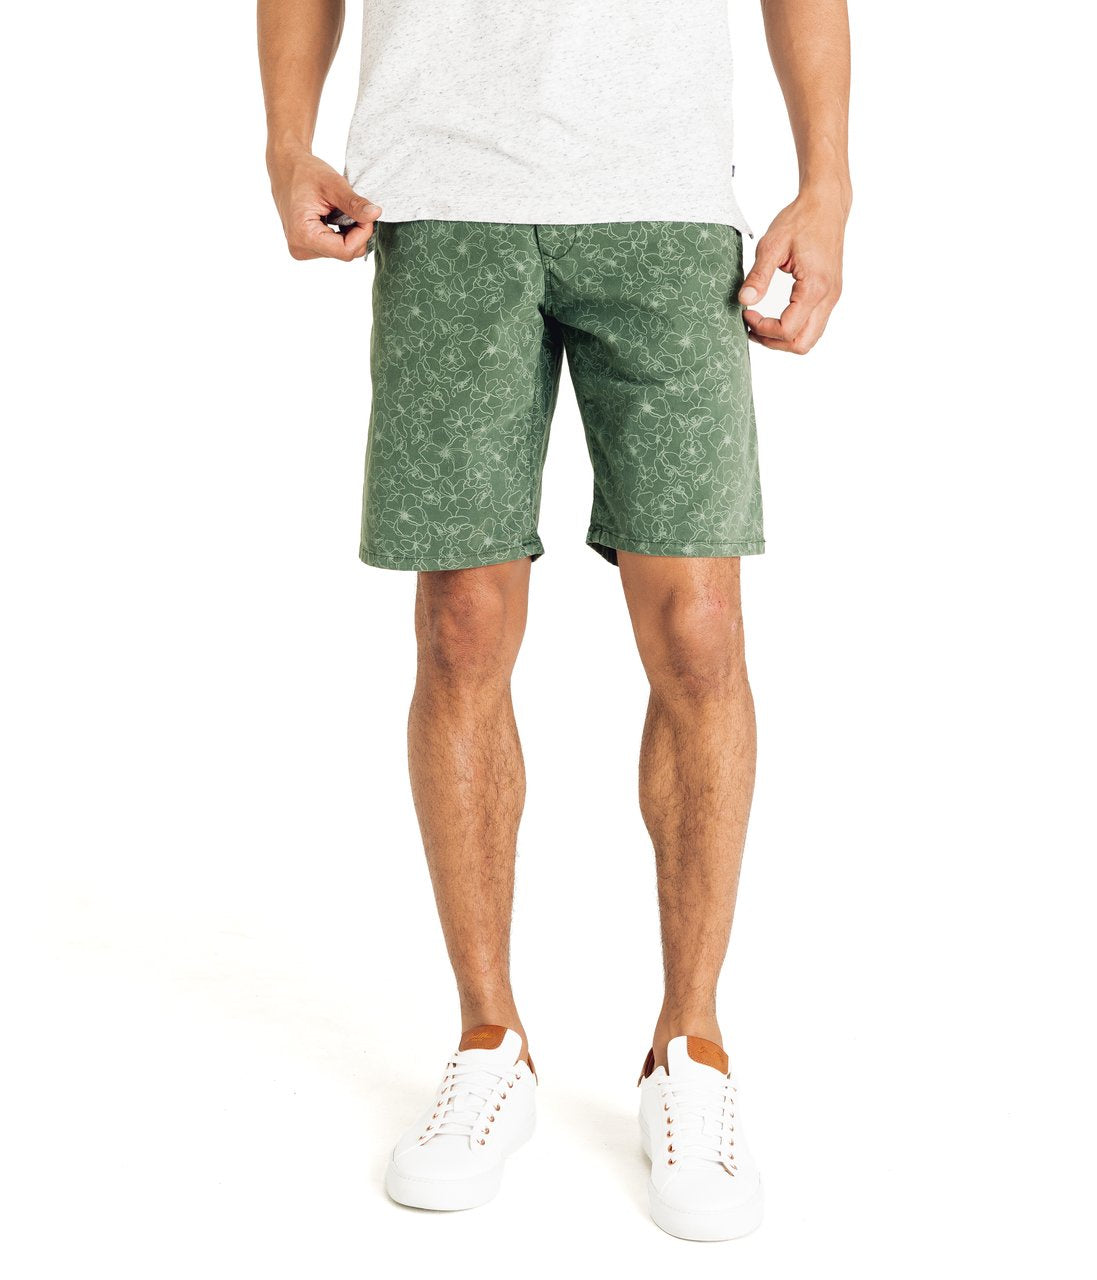 Good Man Brand Wrap Artistic Floral Soft Stretch Shorts